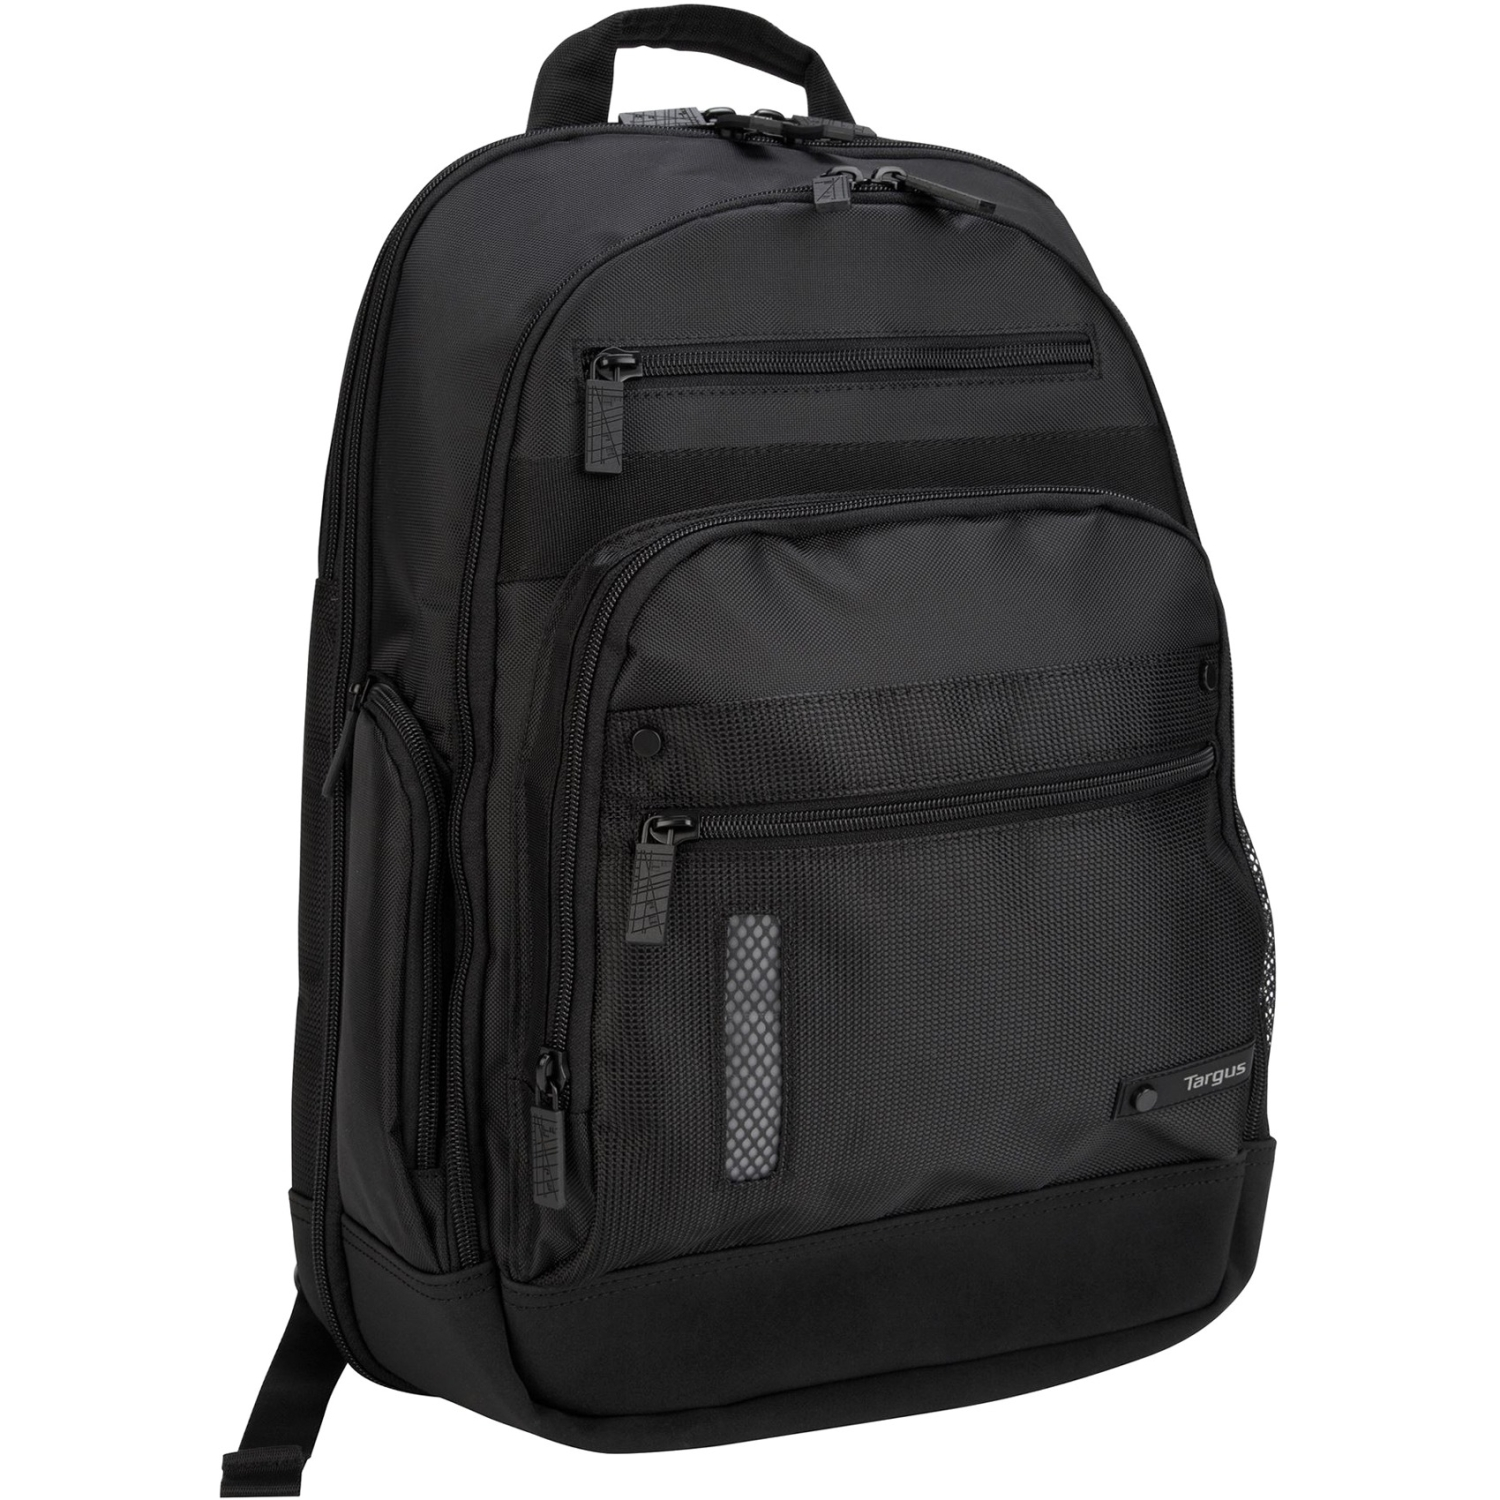 15.4 inch Revolution Notebook Backpack - Notebook carrying backpack - 15.4 inch - black